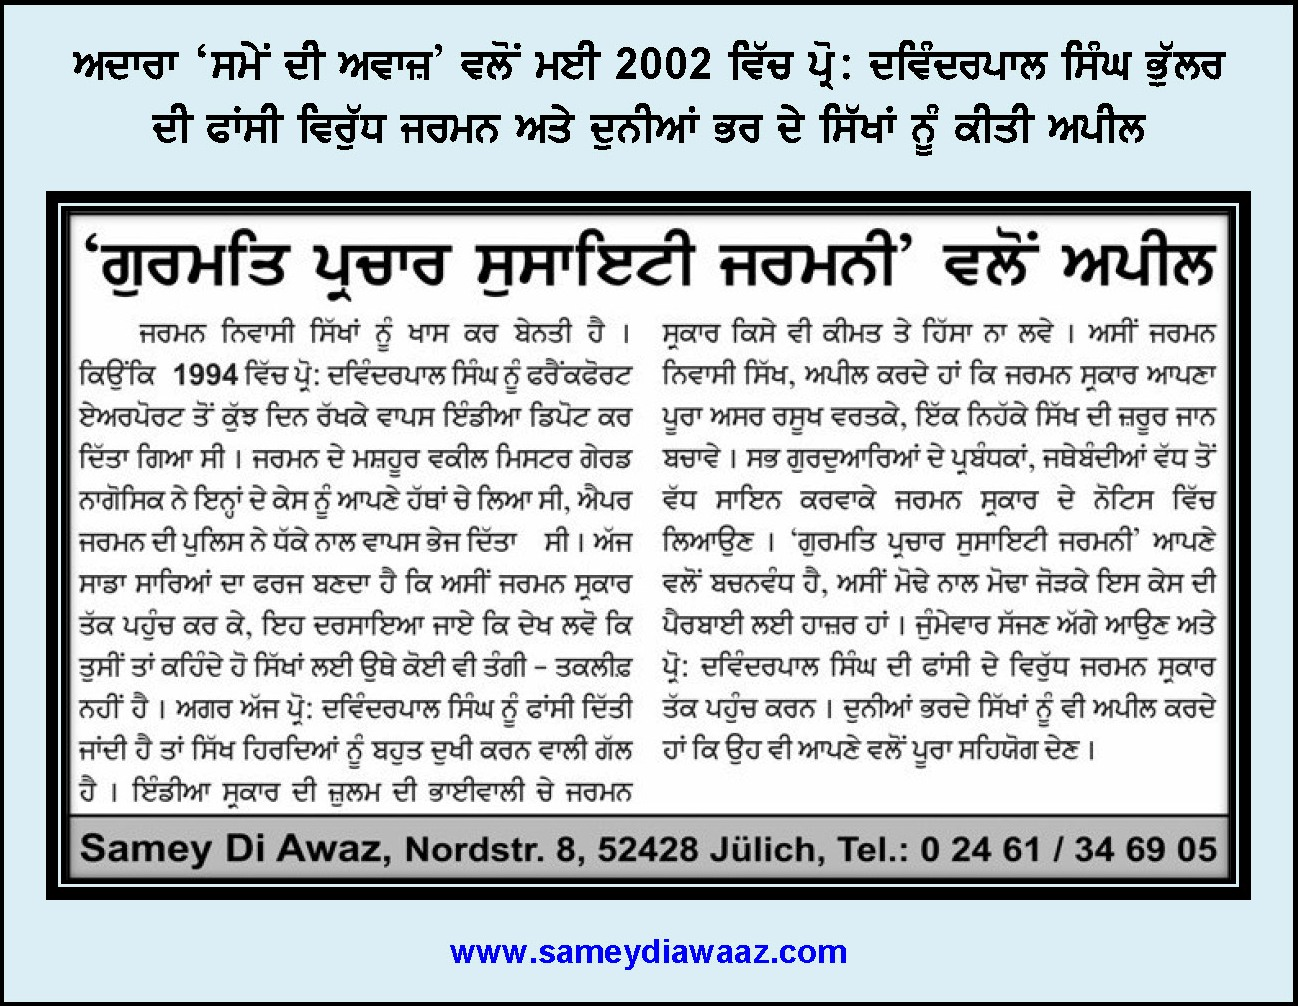 http://sameydiawaaz.com/Vishesh%20Sapliment/SDA%20-%20All%20Post%20of%20Samey%20Di%20Awaaz%20on%20Facebook%20-%2005.04.2014/49.jpg